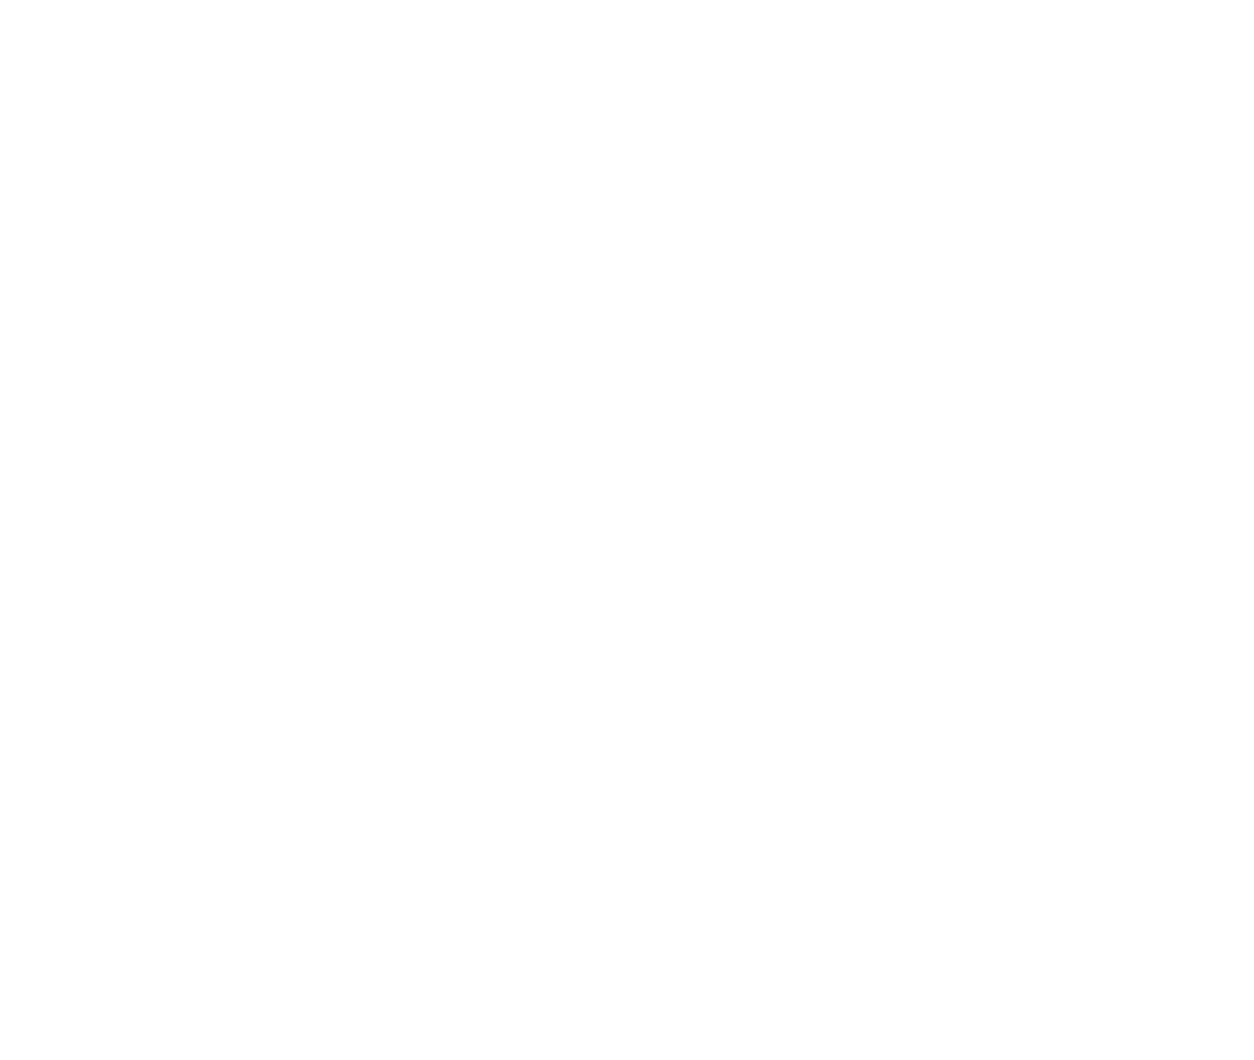 Outfest_BWLaurels-white.png